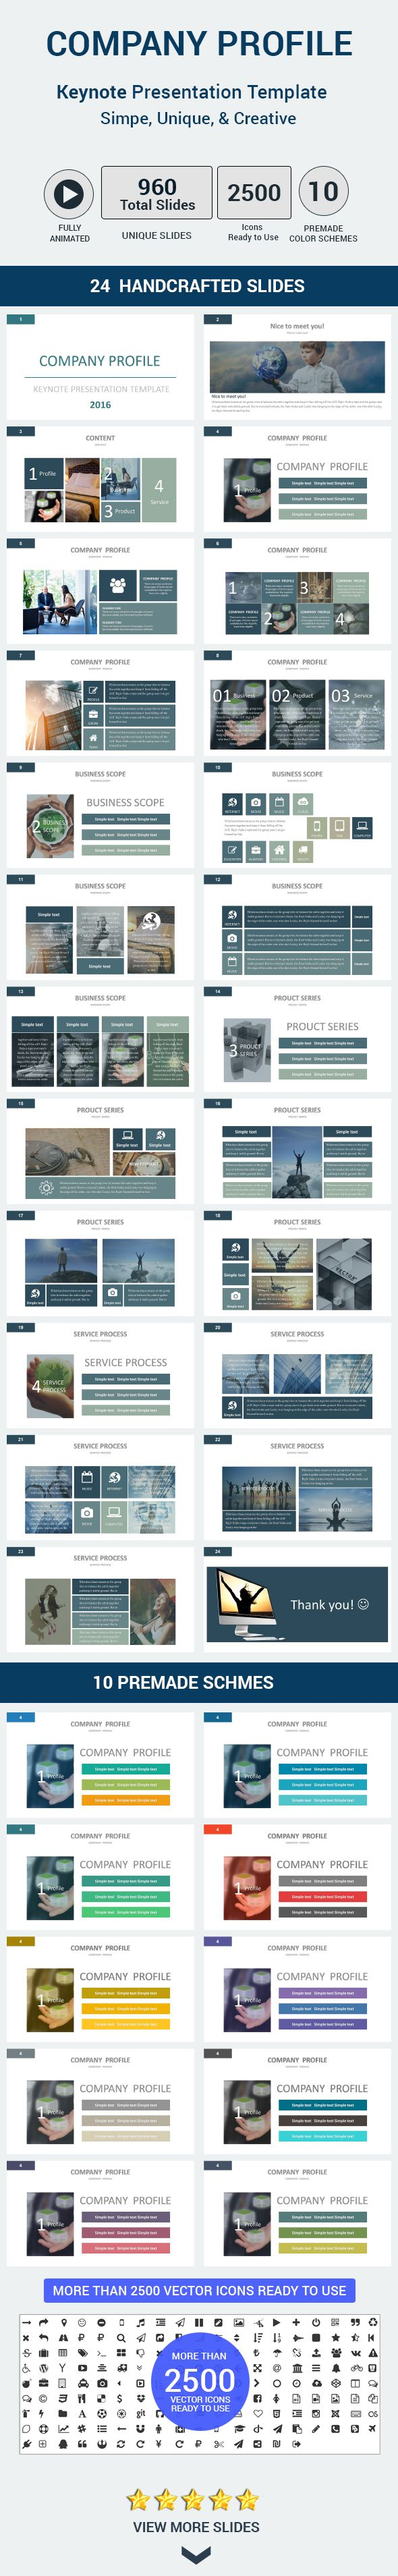 Company Profile Keynote Presentation Template  Company Profile